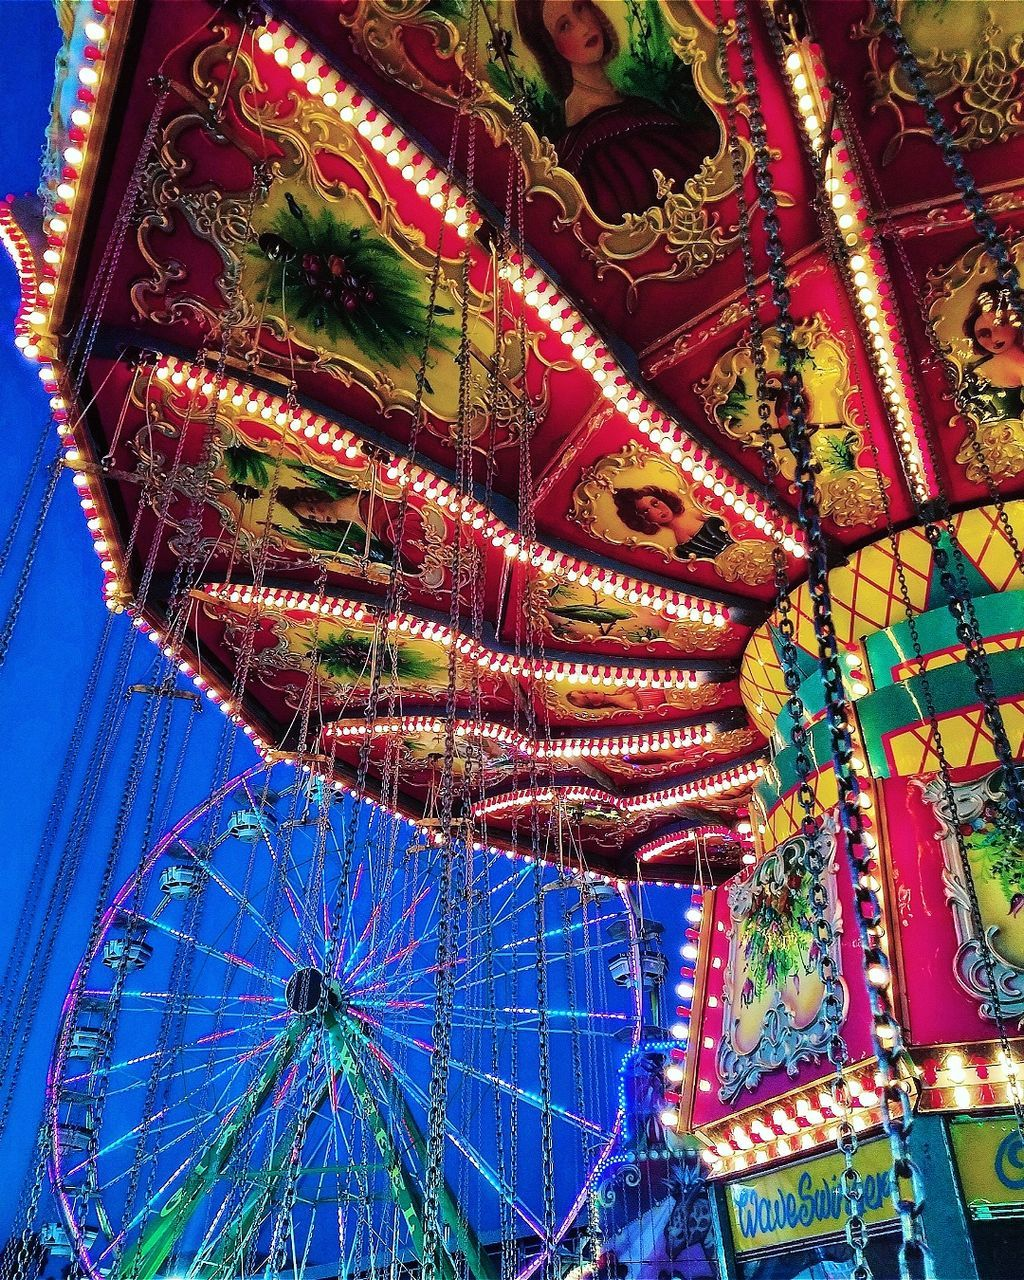 amusement park, arts culture and entertainment, amusement park ride, ferris wheel, carousel, low angle view, leisure activity, fun, blue, multi colored, outdoors, no people, day, merry-go-round, clear sky, illuminated, close-up, sky